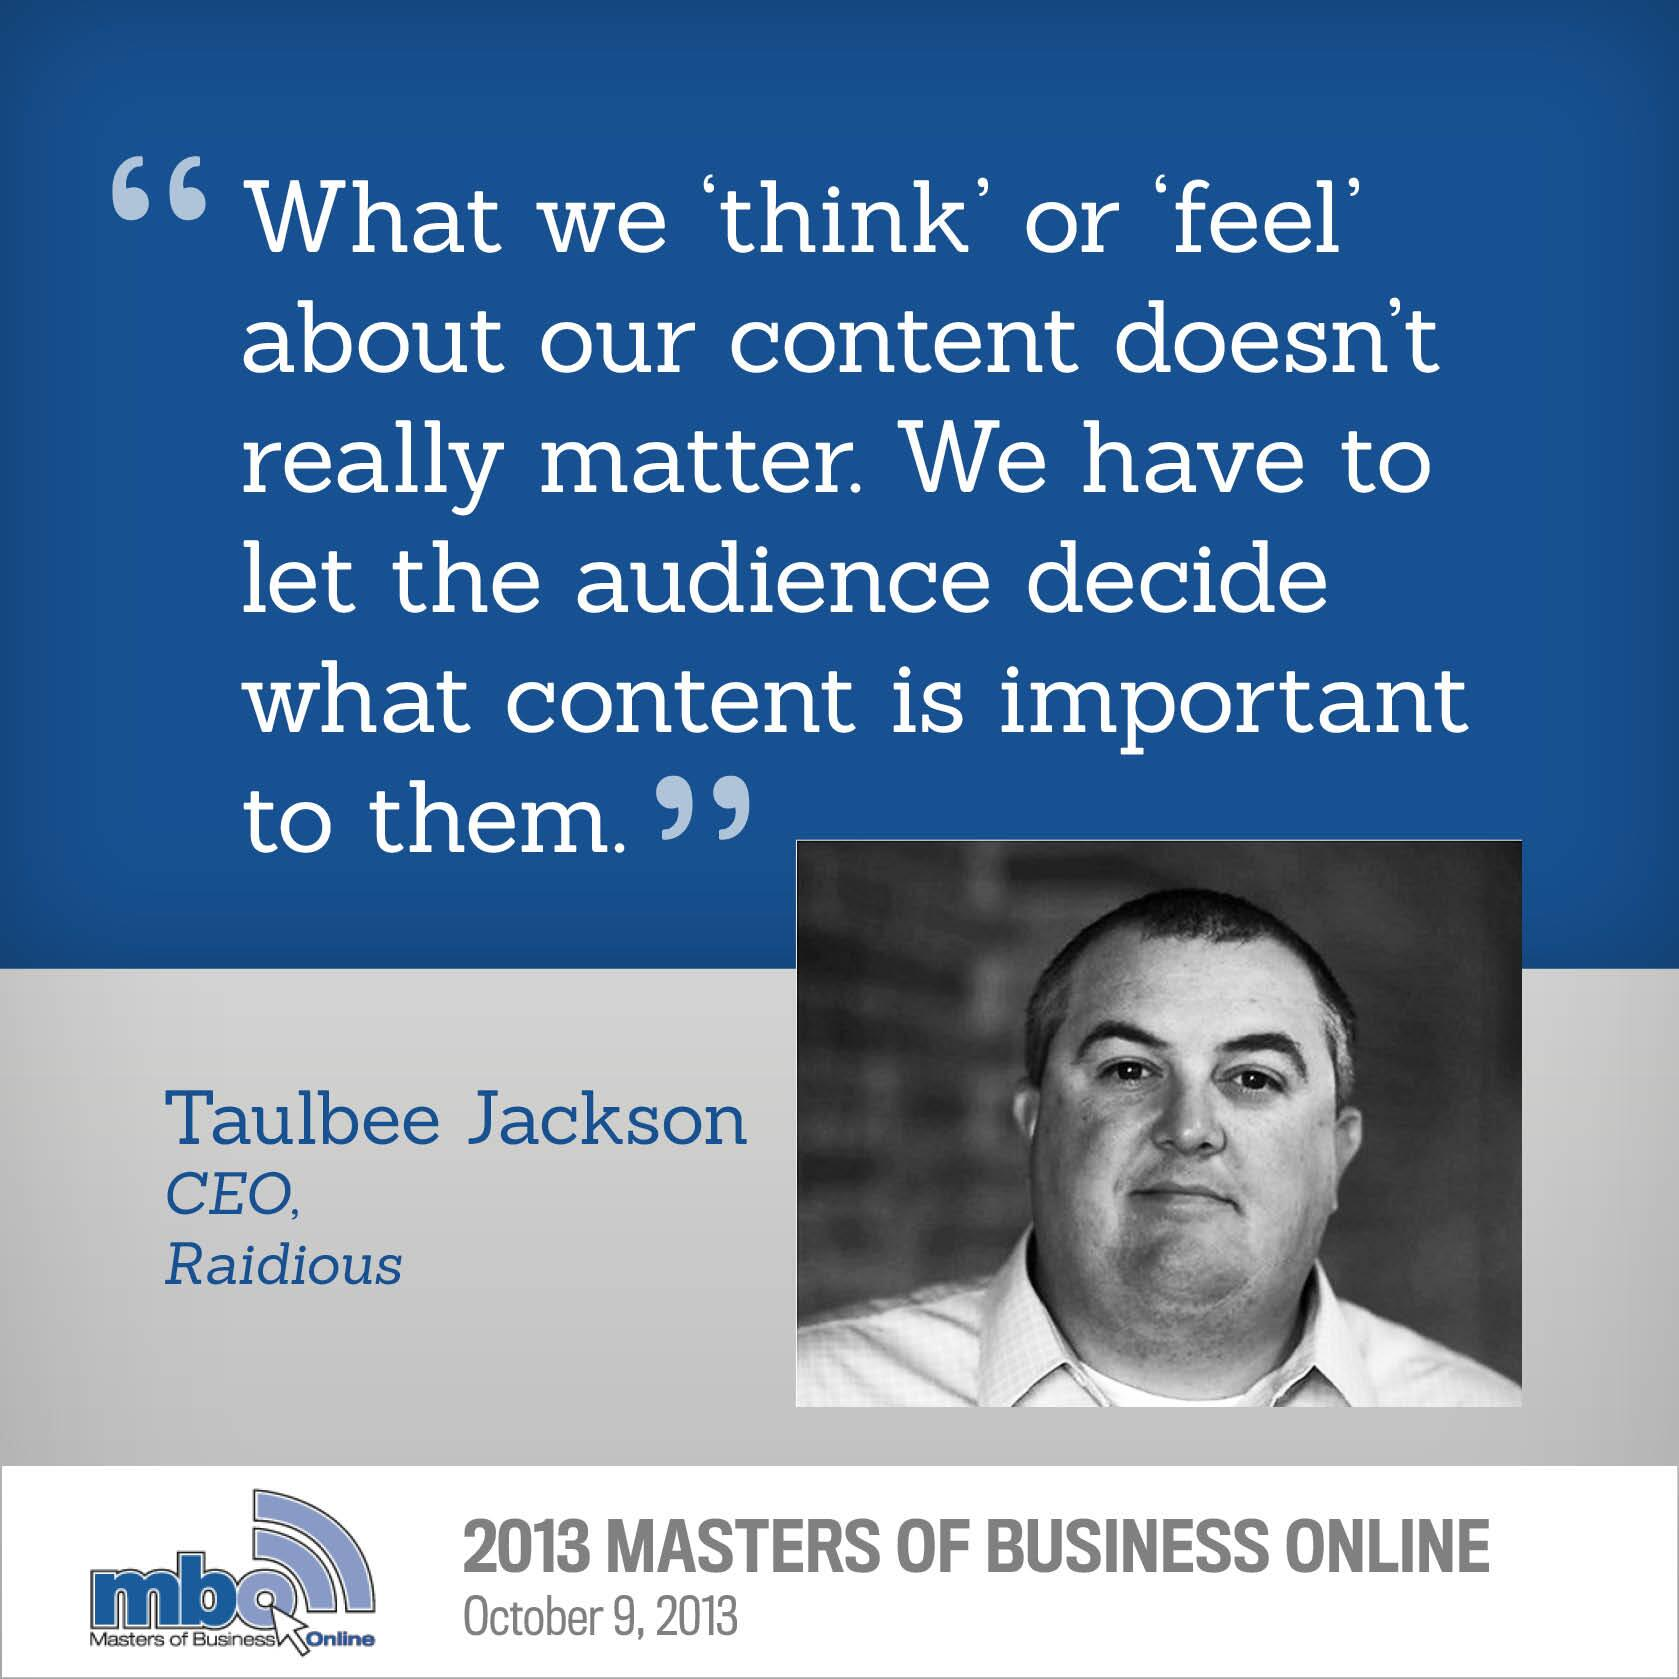 Cater to your audience - @taulbee